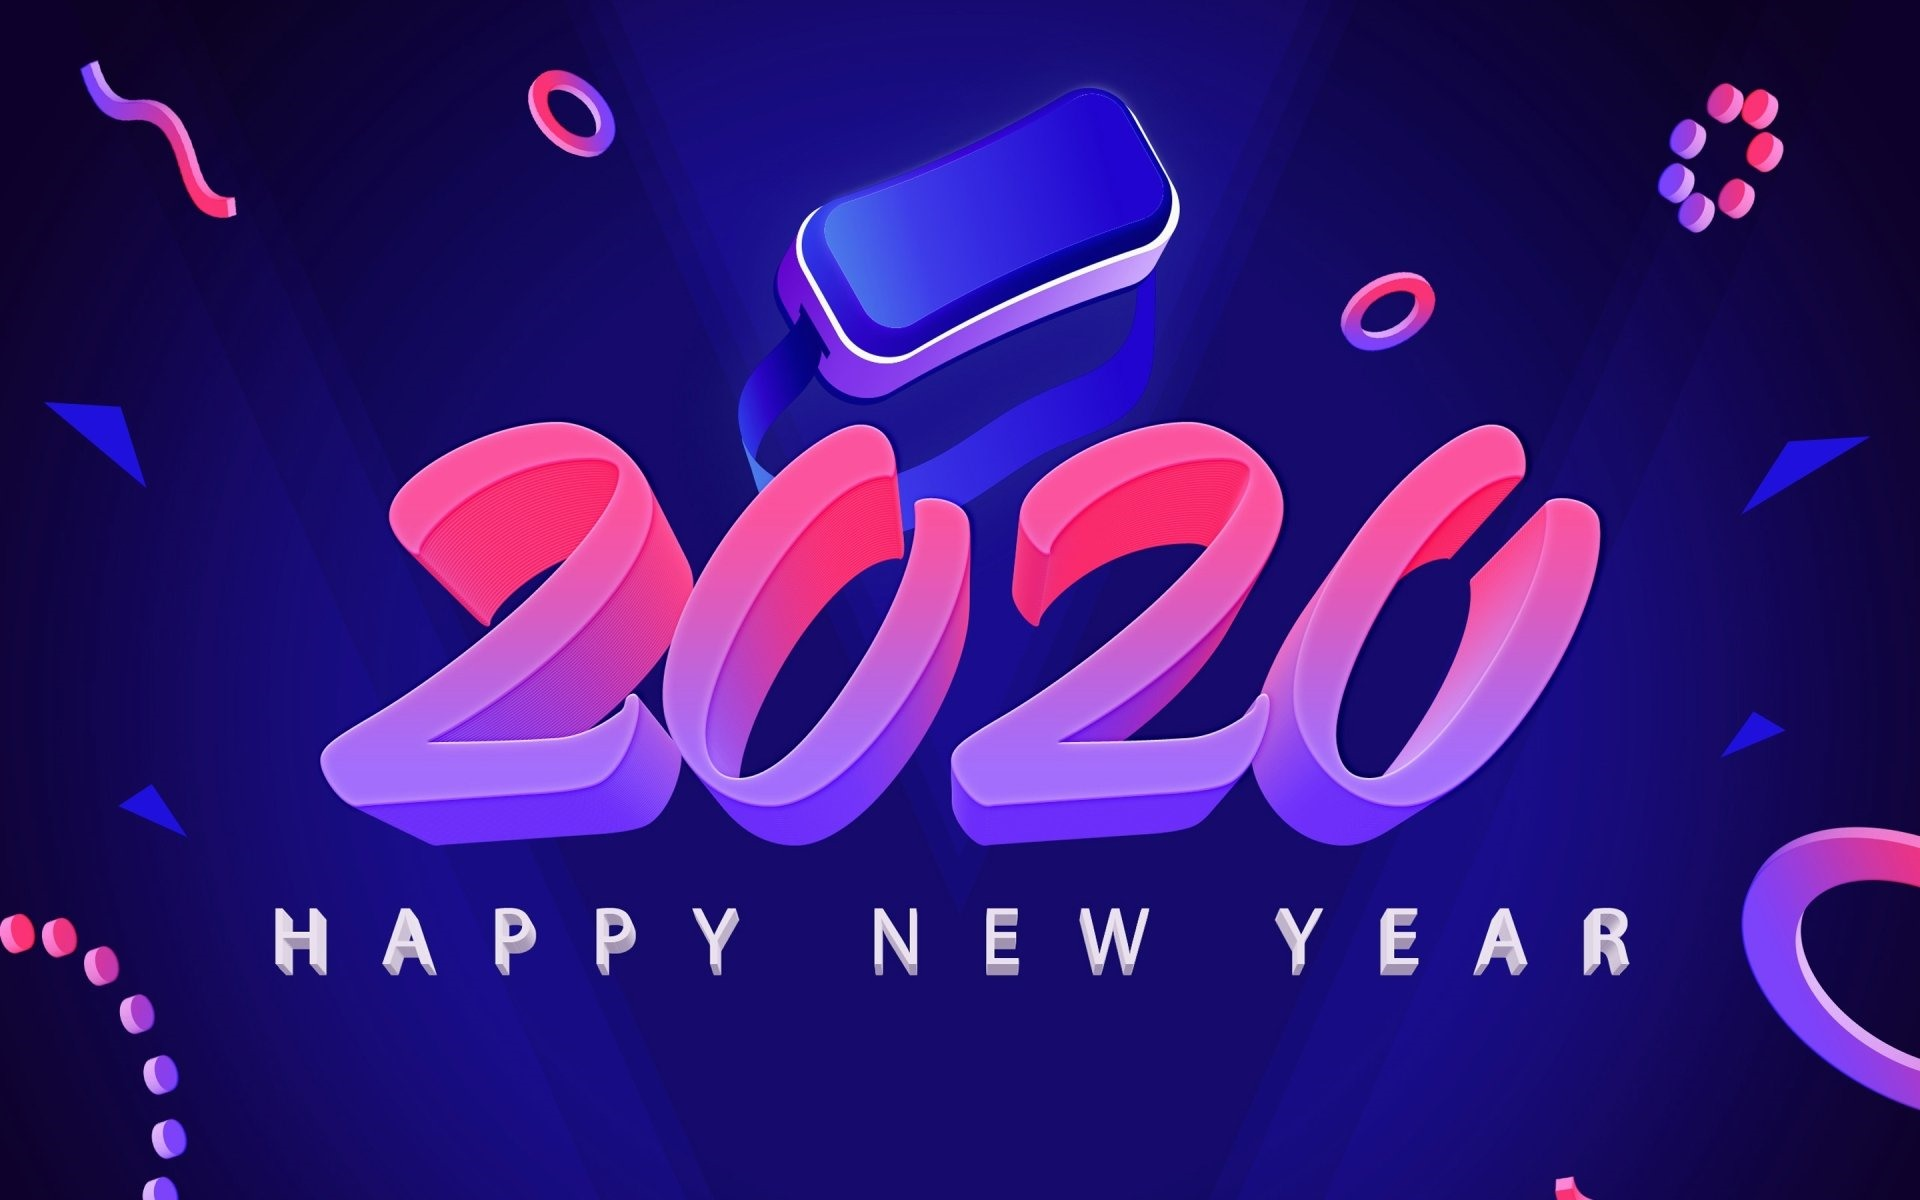 Wallpaper Happy New Year 2020 Art Picture Creative 1920x1200 Hd Picture Image